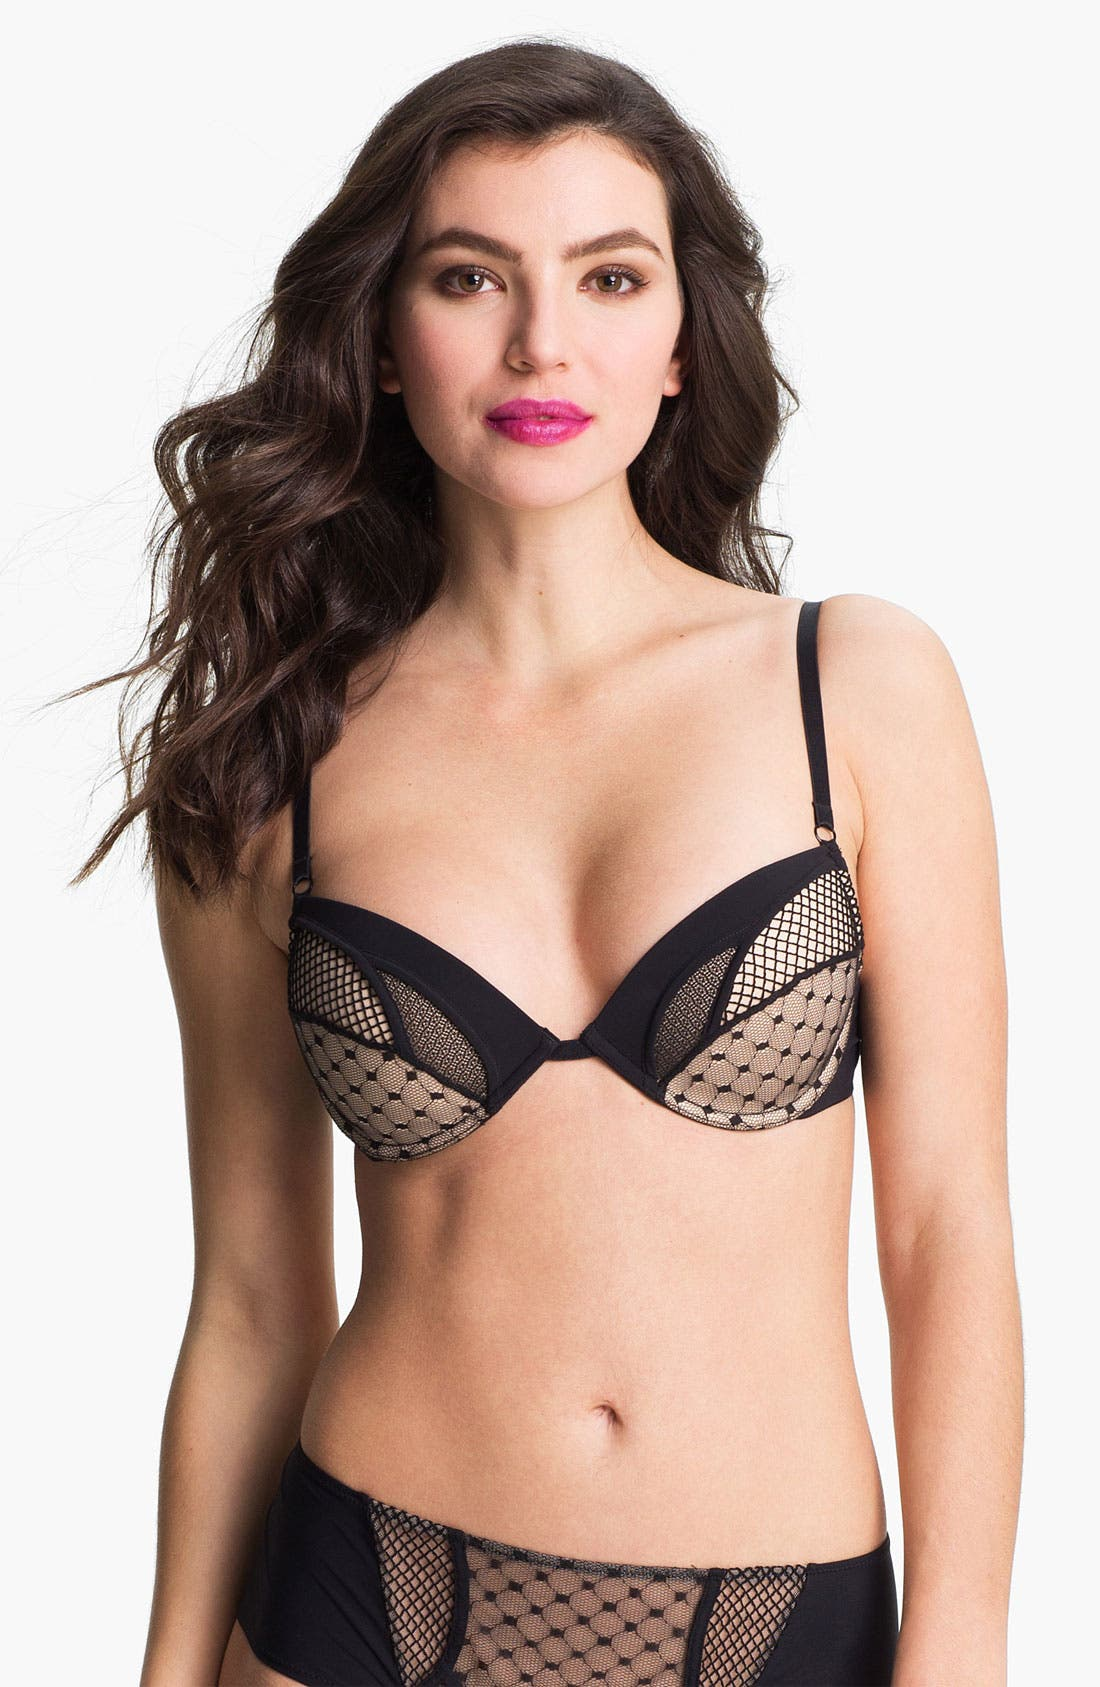 Main Image - La Perla 'Obsession of Love' Molded Underwire Push Up Bra